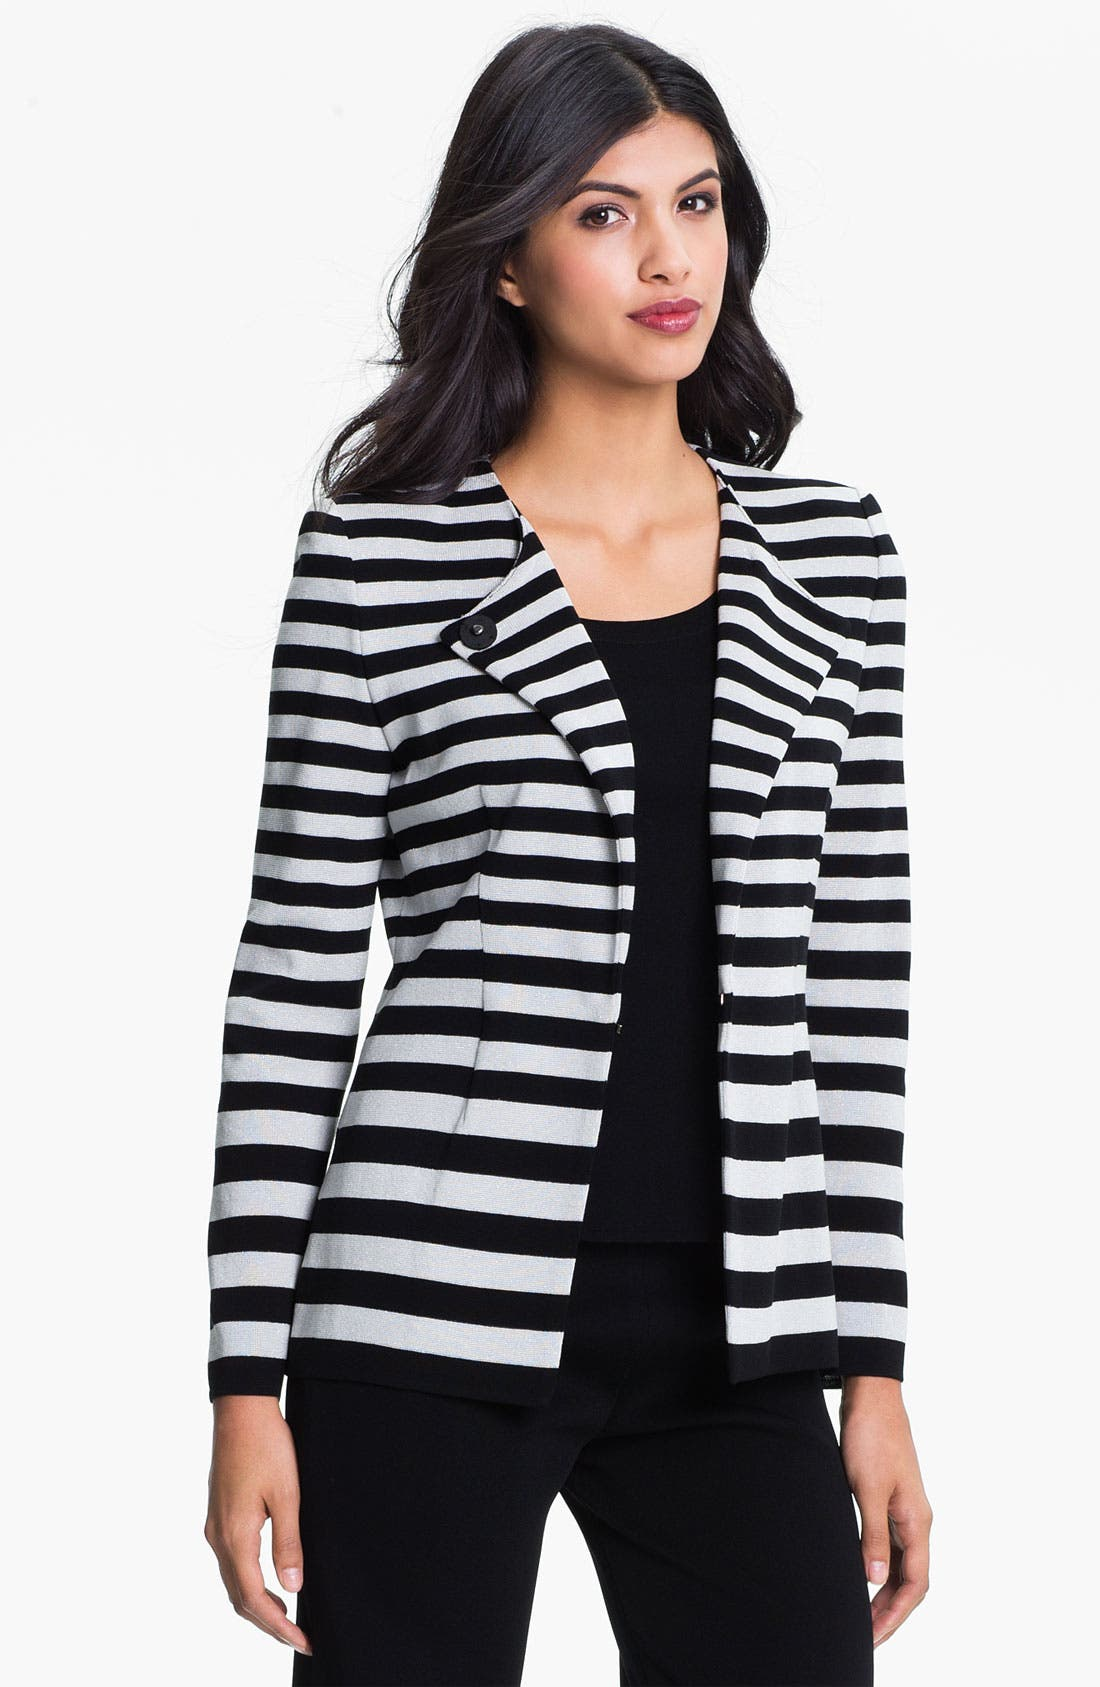 Alternate Image 1 Selected - Exclusively Misook Stripe Knit Jacket